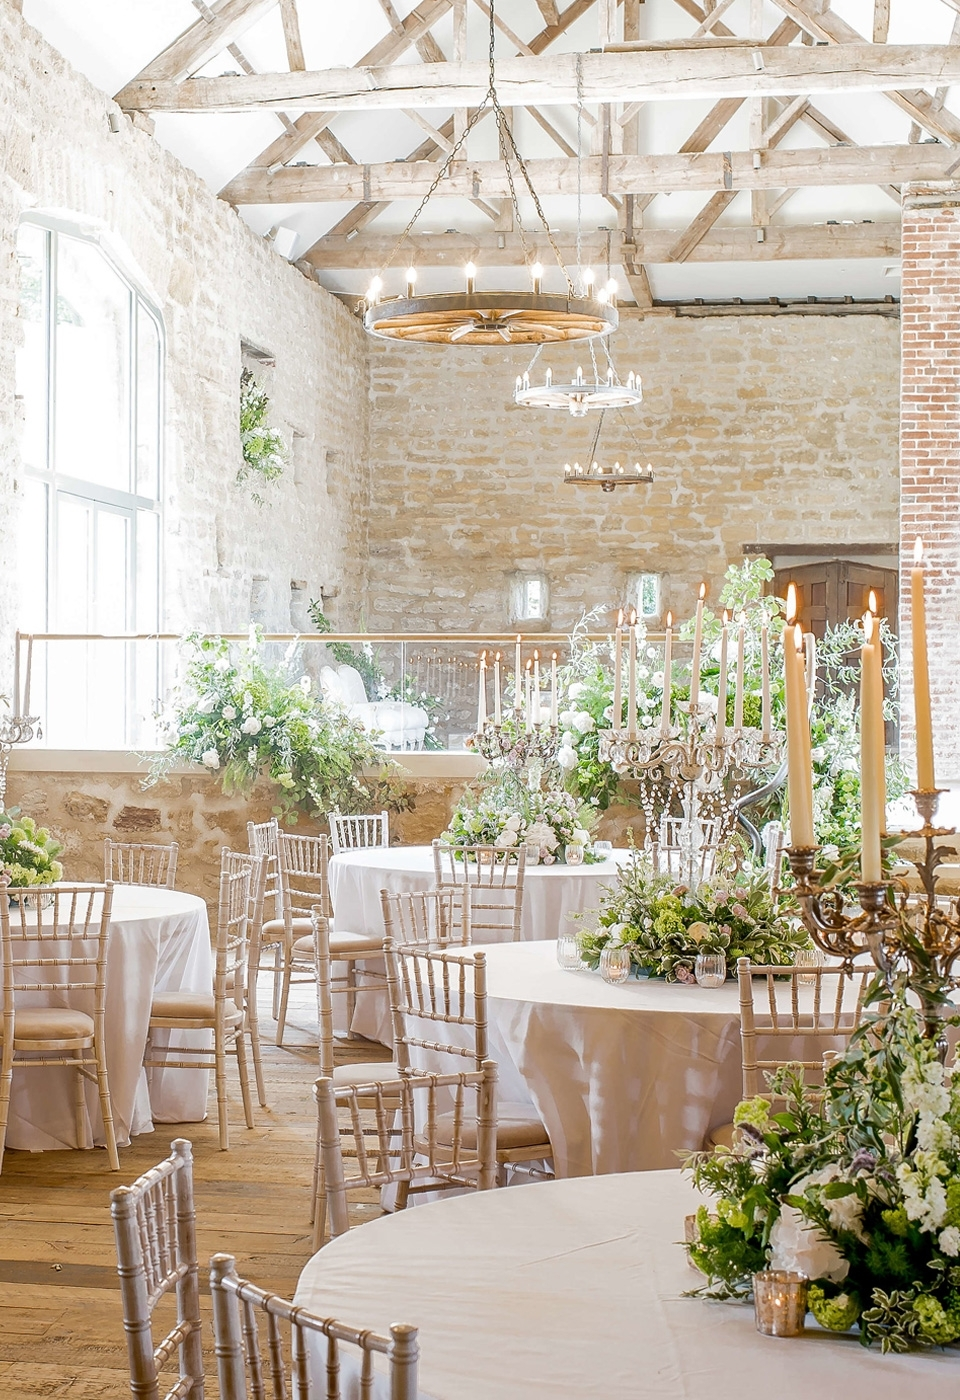 The Tithe Barn – South Yorkshire Wedding Venue